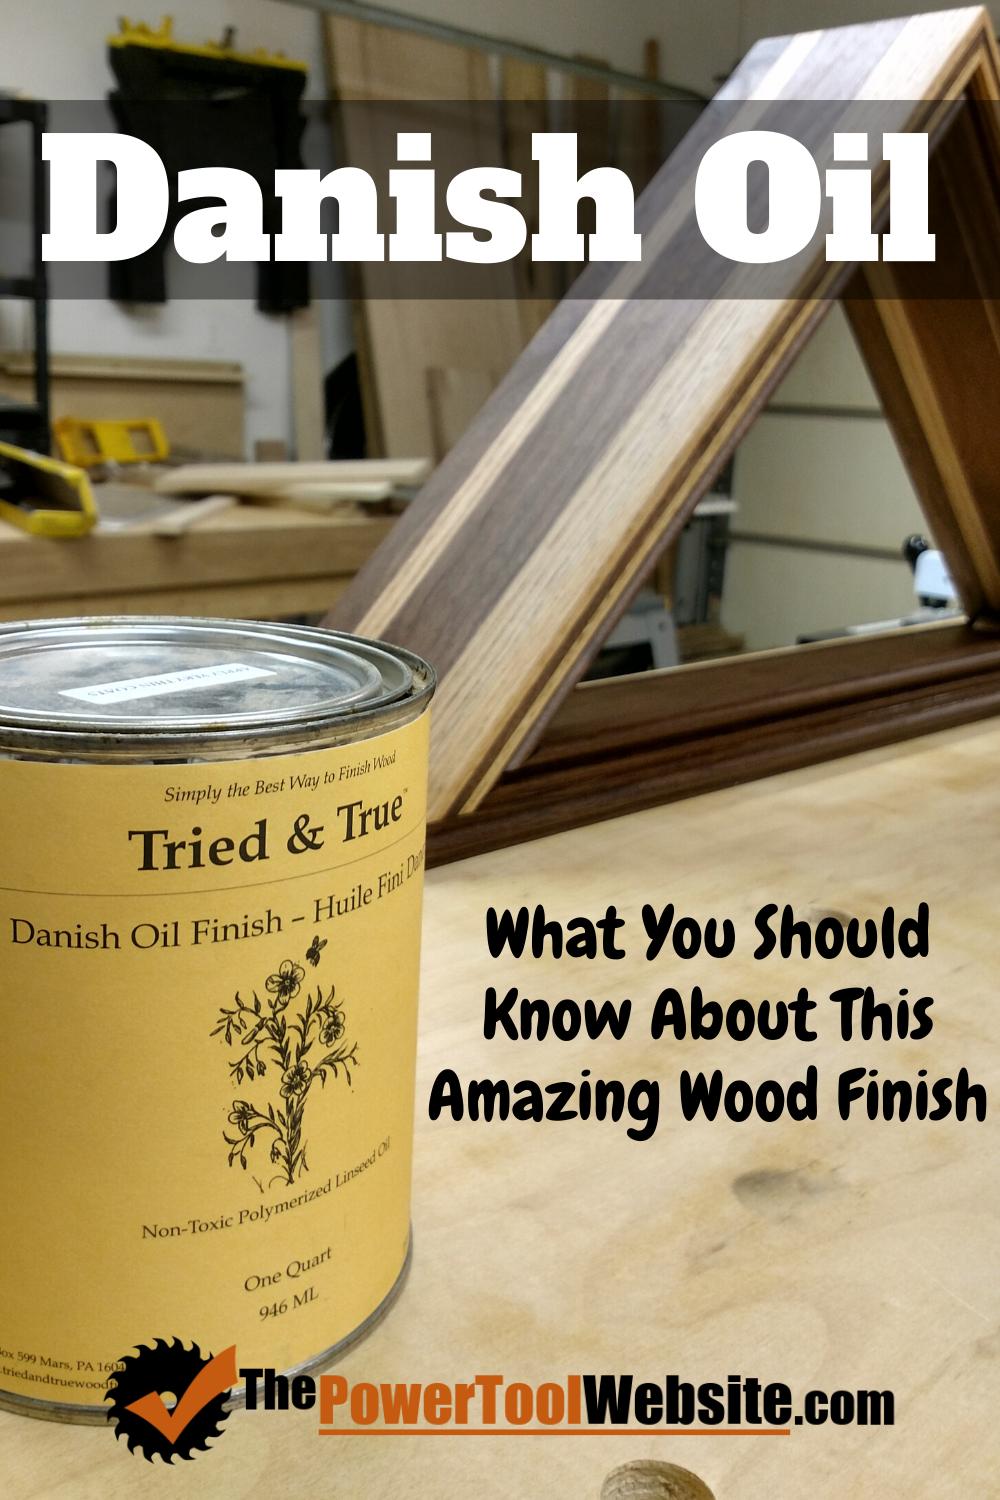 Danish Oil – What You Should Know About This Amazing Wood Finish